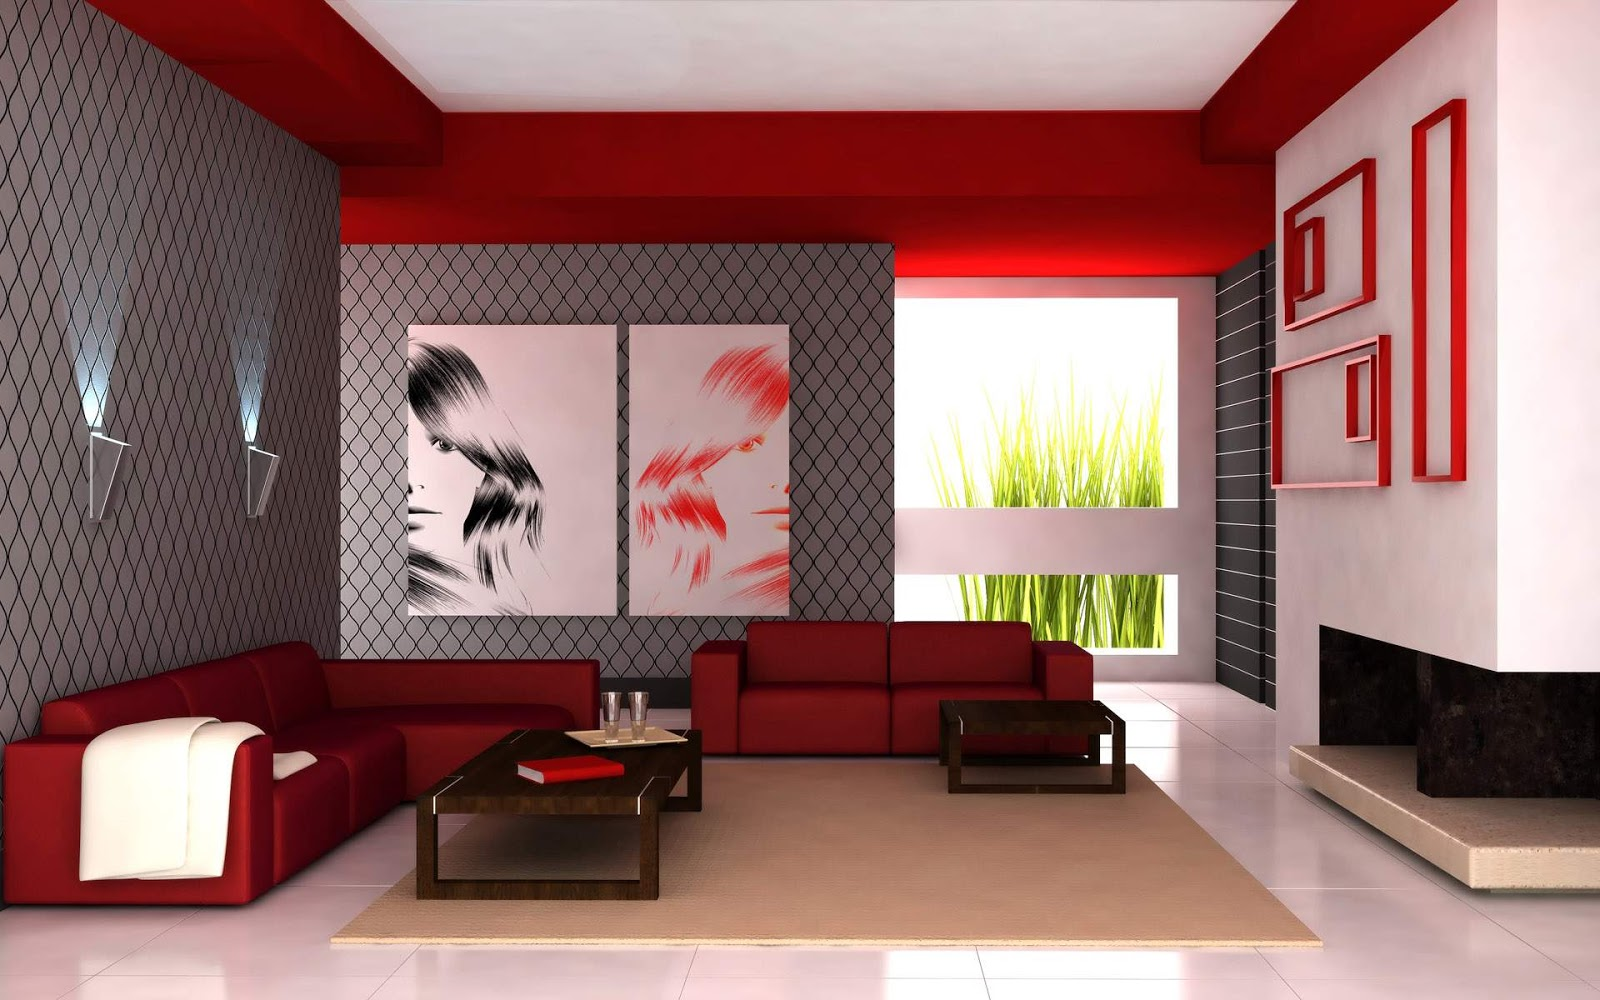 Home decoration design modern and latest interior design for Interior design ideas for home decor